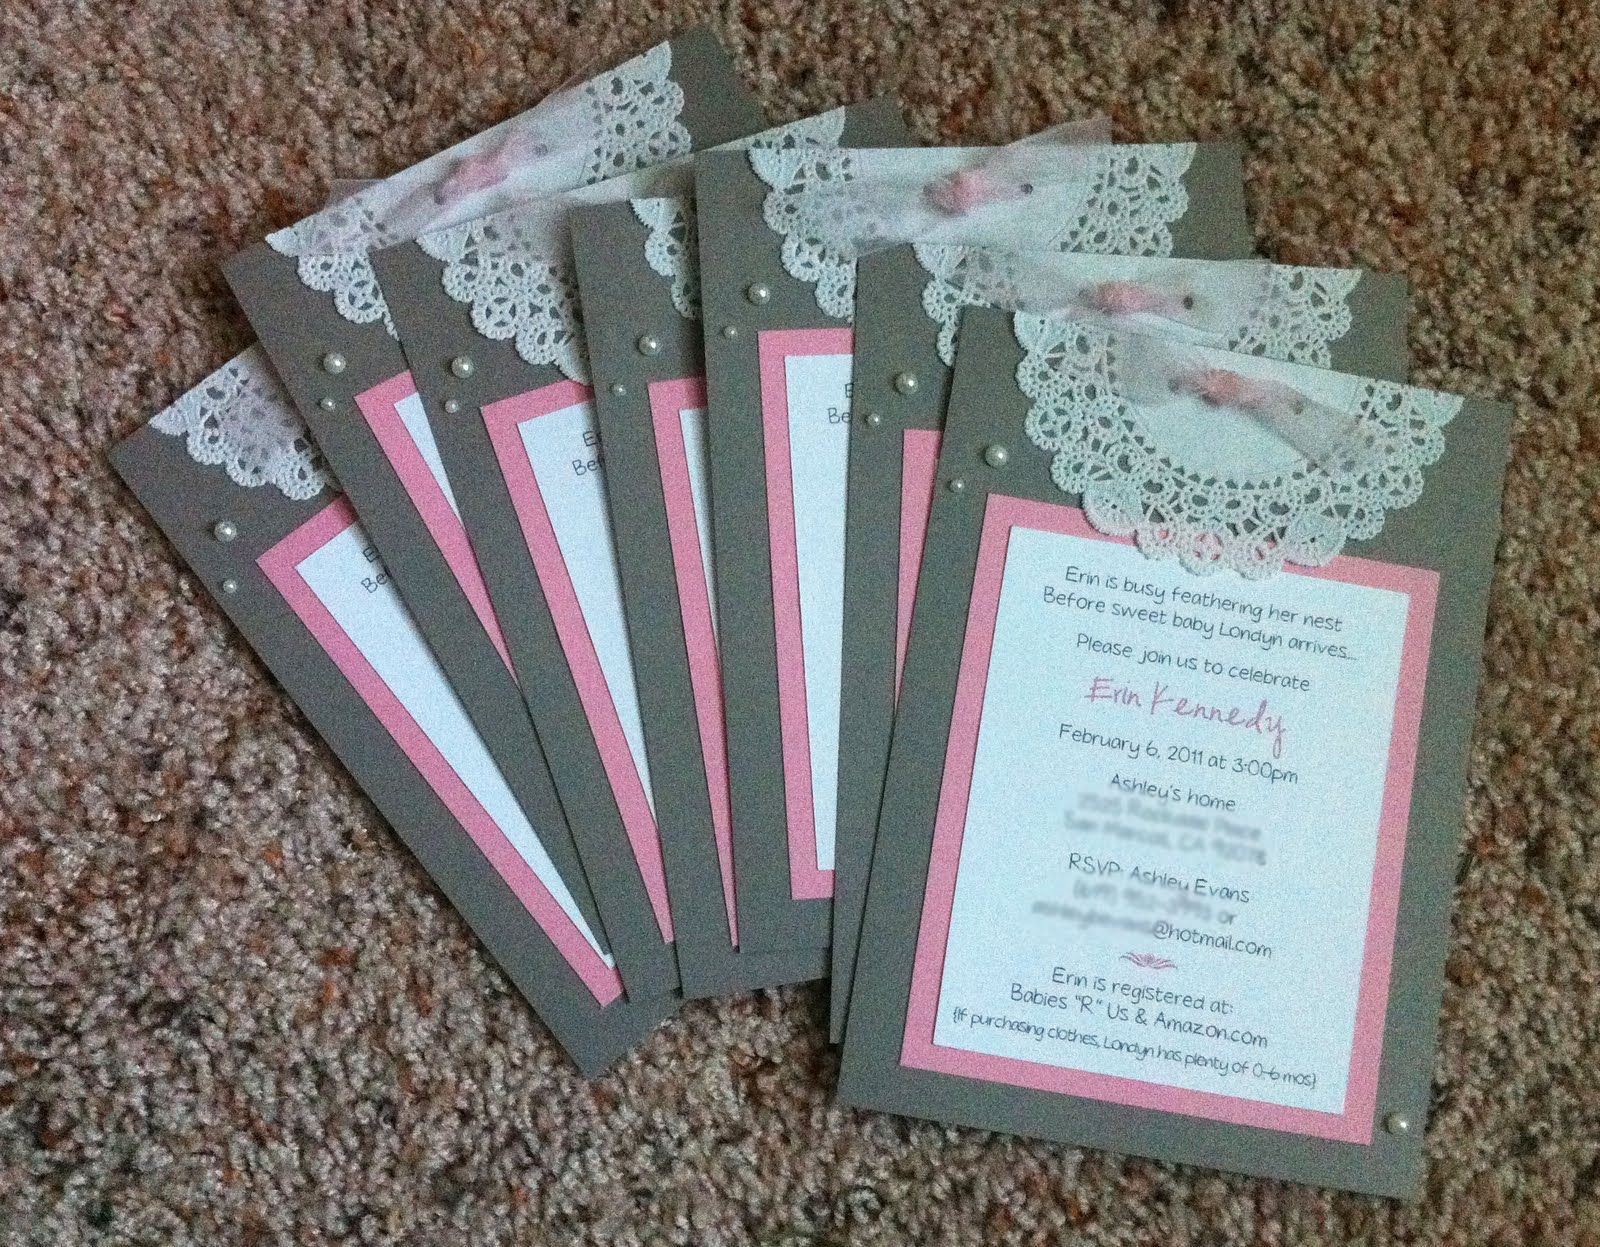 Lace Wedding Scrapbook Ideas Pearls Lace Baby Shower Invitations